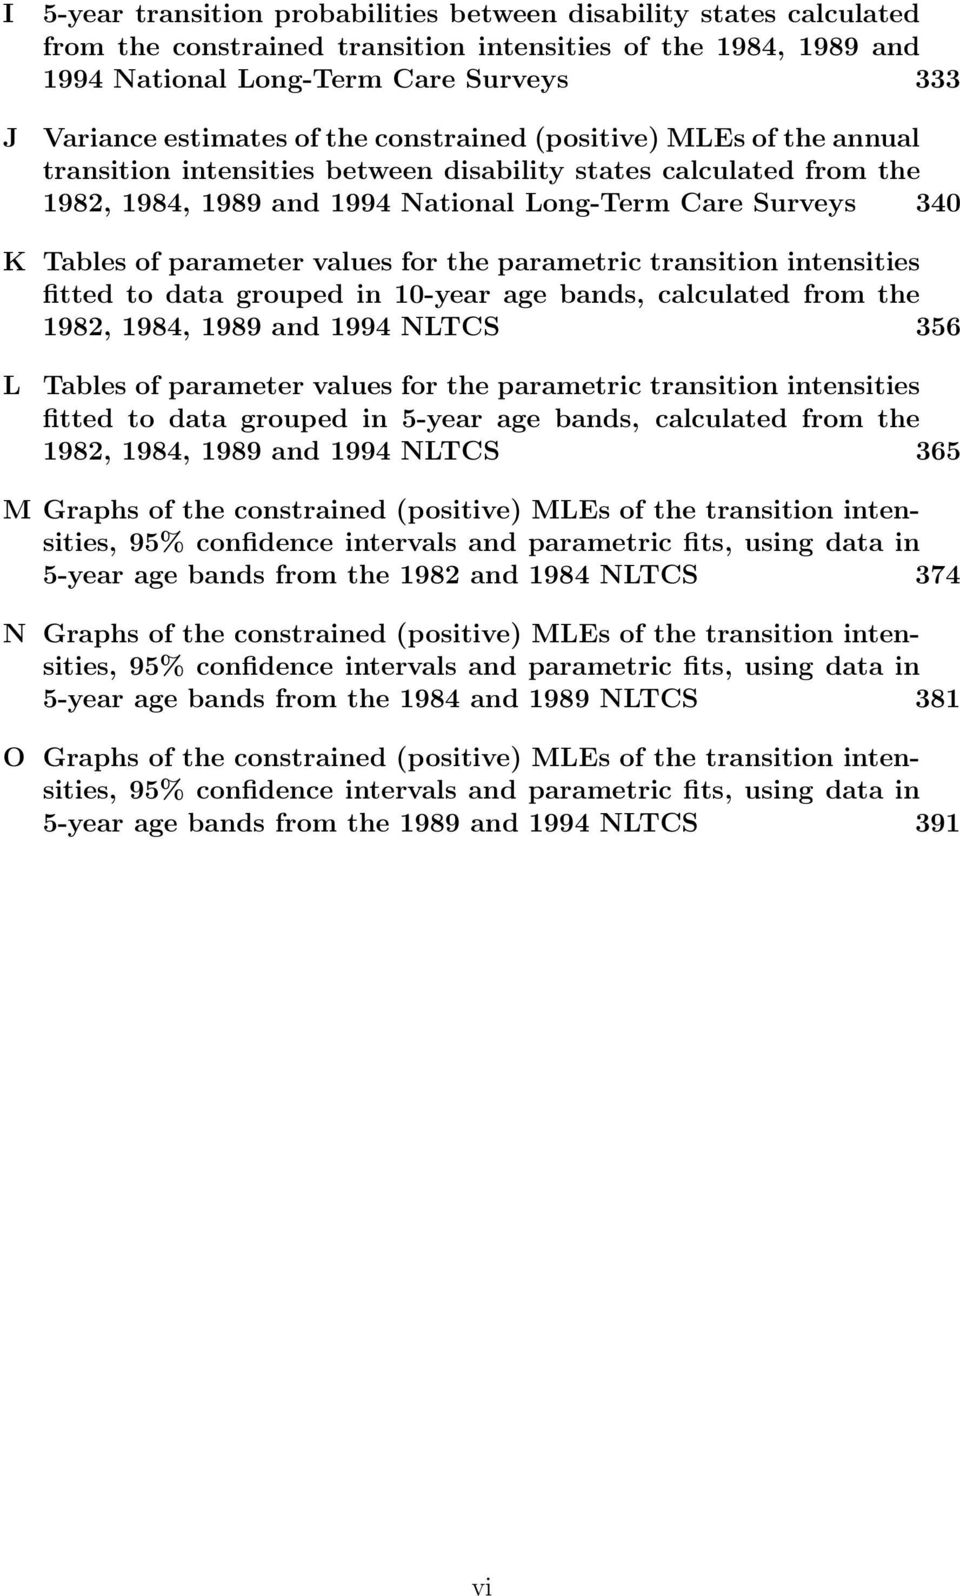 values for the parametric transition intensities fitted to data grouped in 10year age bands, calculated from the 1982, 1984, 1989 and 1994 NLTCS 356 L Tables of parameter values for the parametric